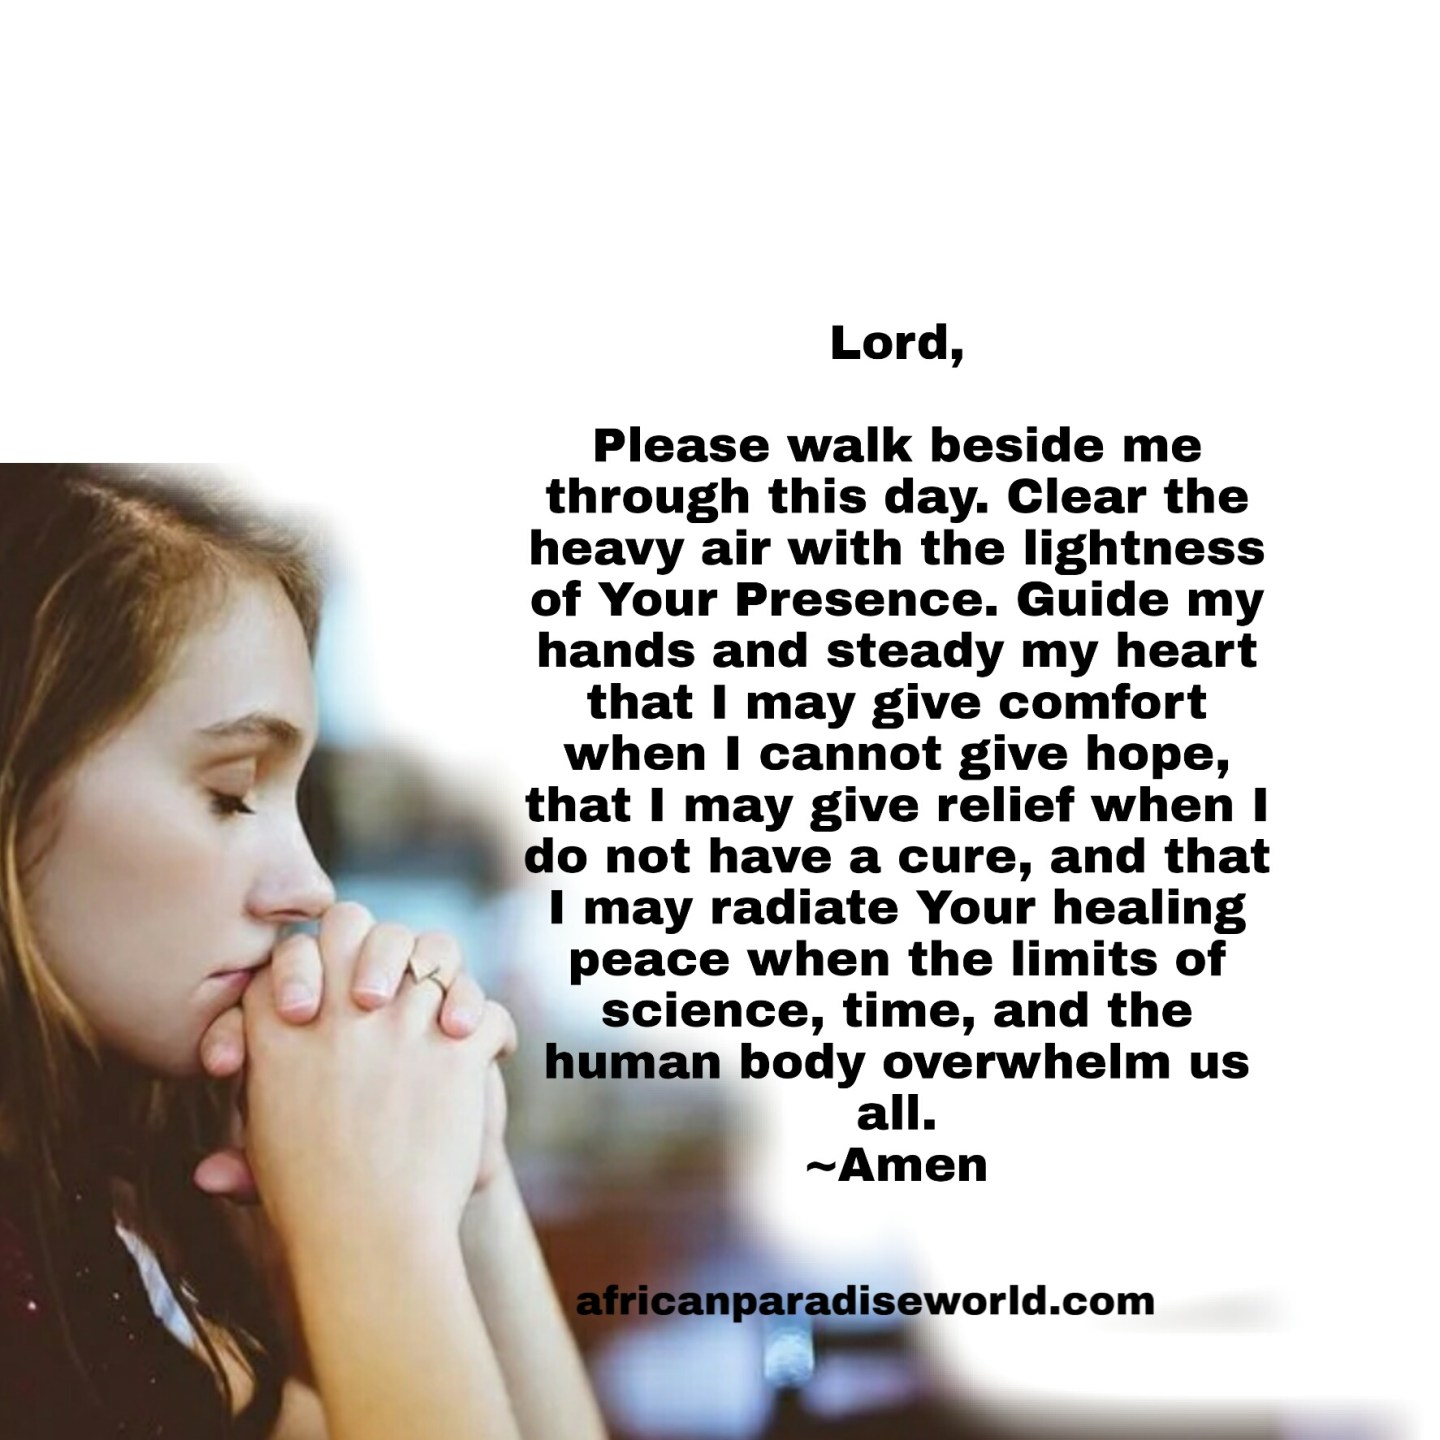 Prayer for a healthy life